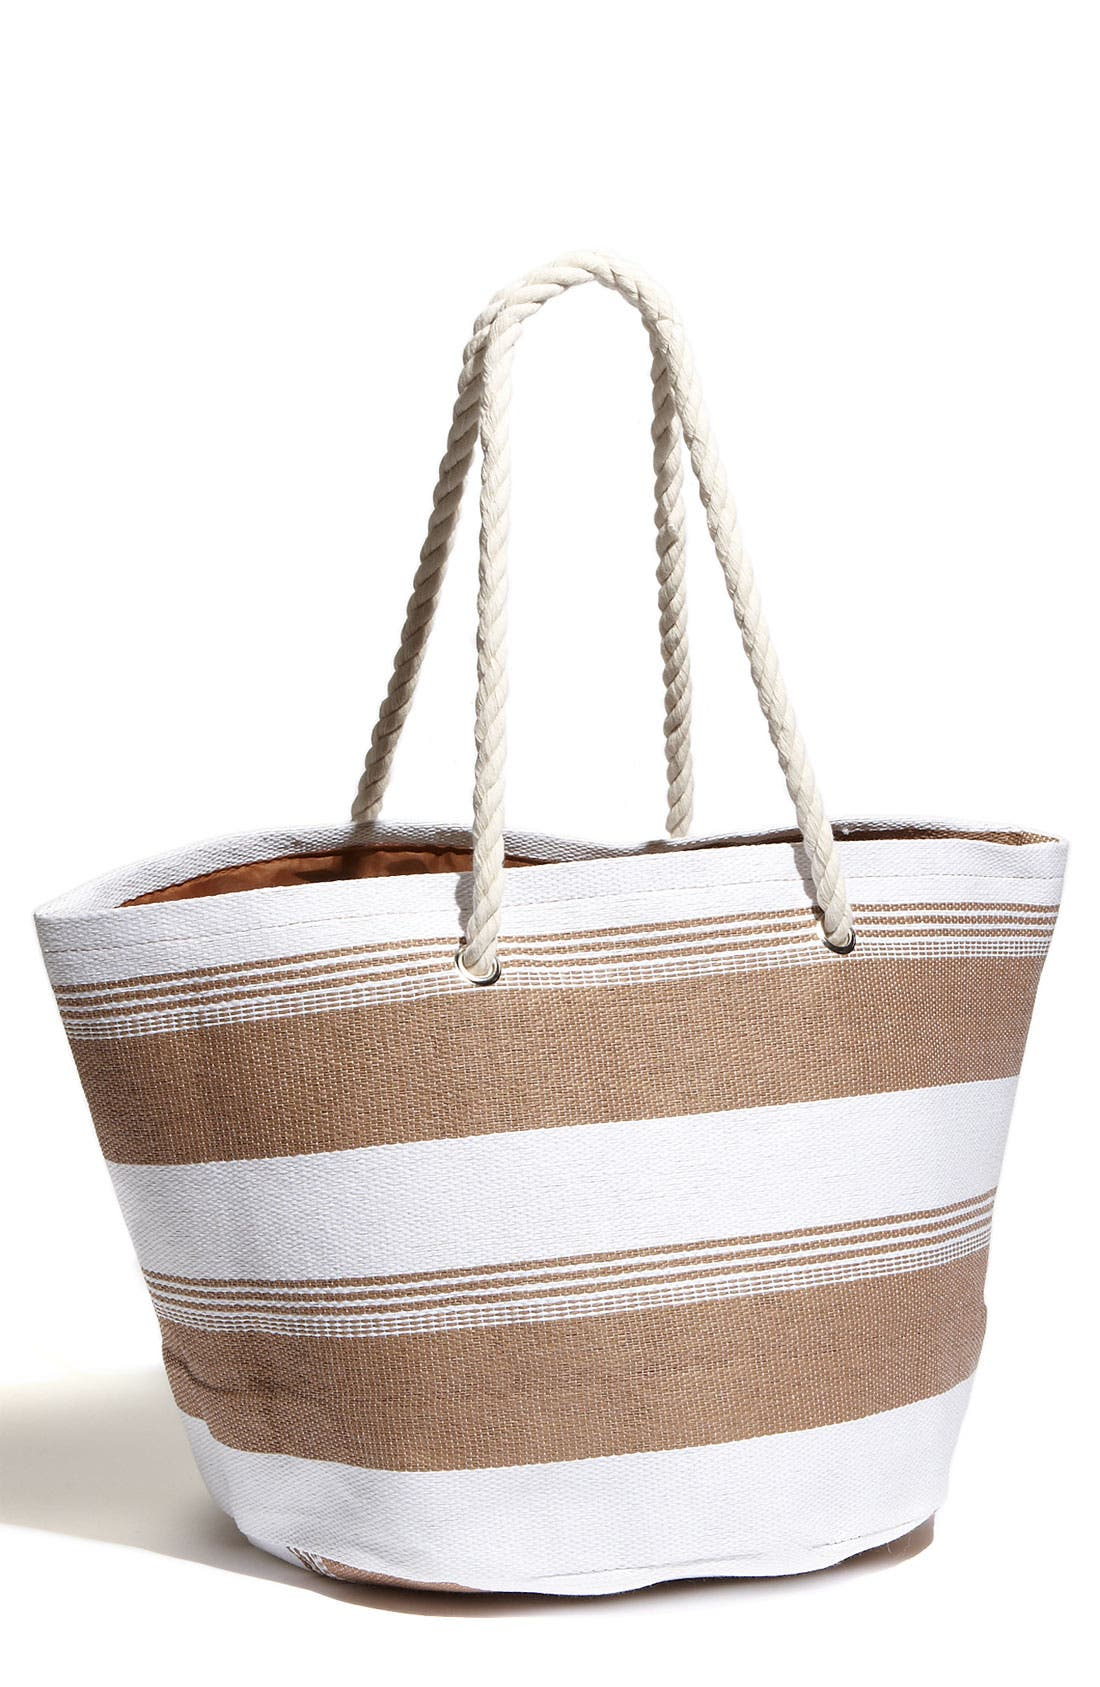 Main Image - Cesca Rope Handle Woven Stripe Tote